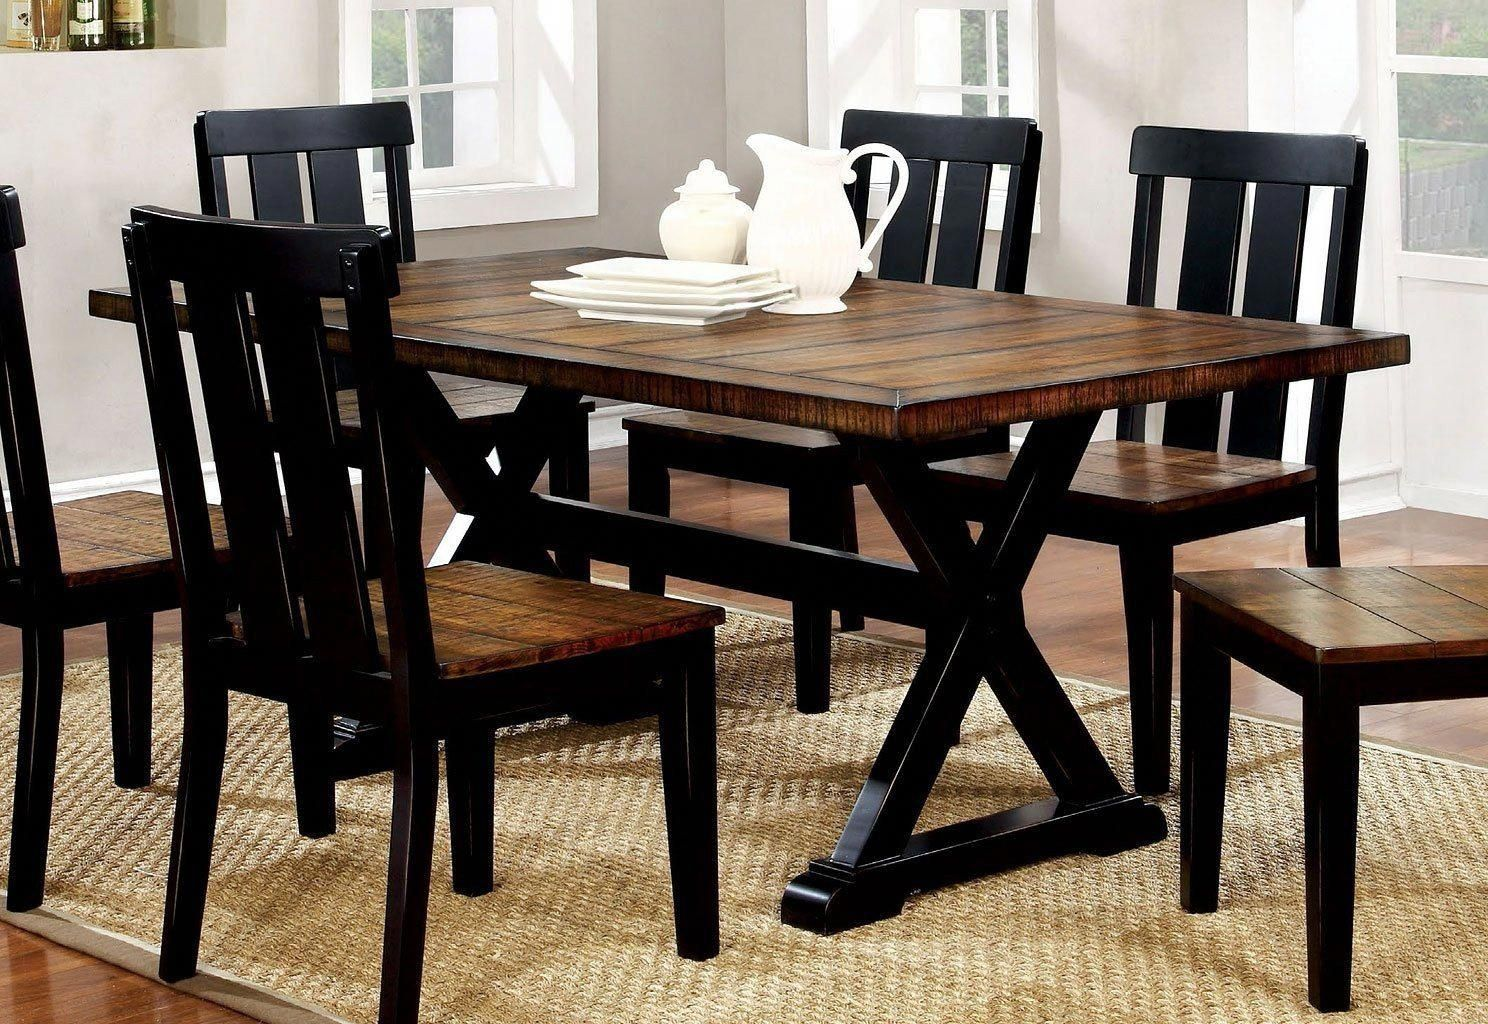 Dining Tables Black V Shape Dining Table High Top Furniture Furnitureterbaru Diningt Dining Table Black Rustic Farmhouse Dining Table Farmhouse Dining Table